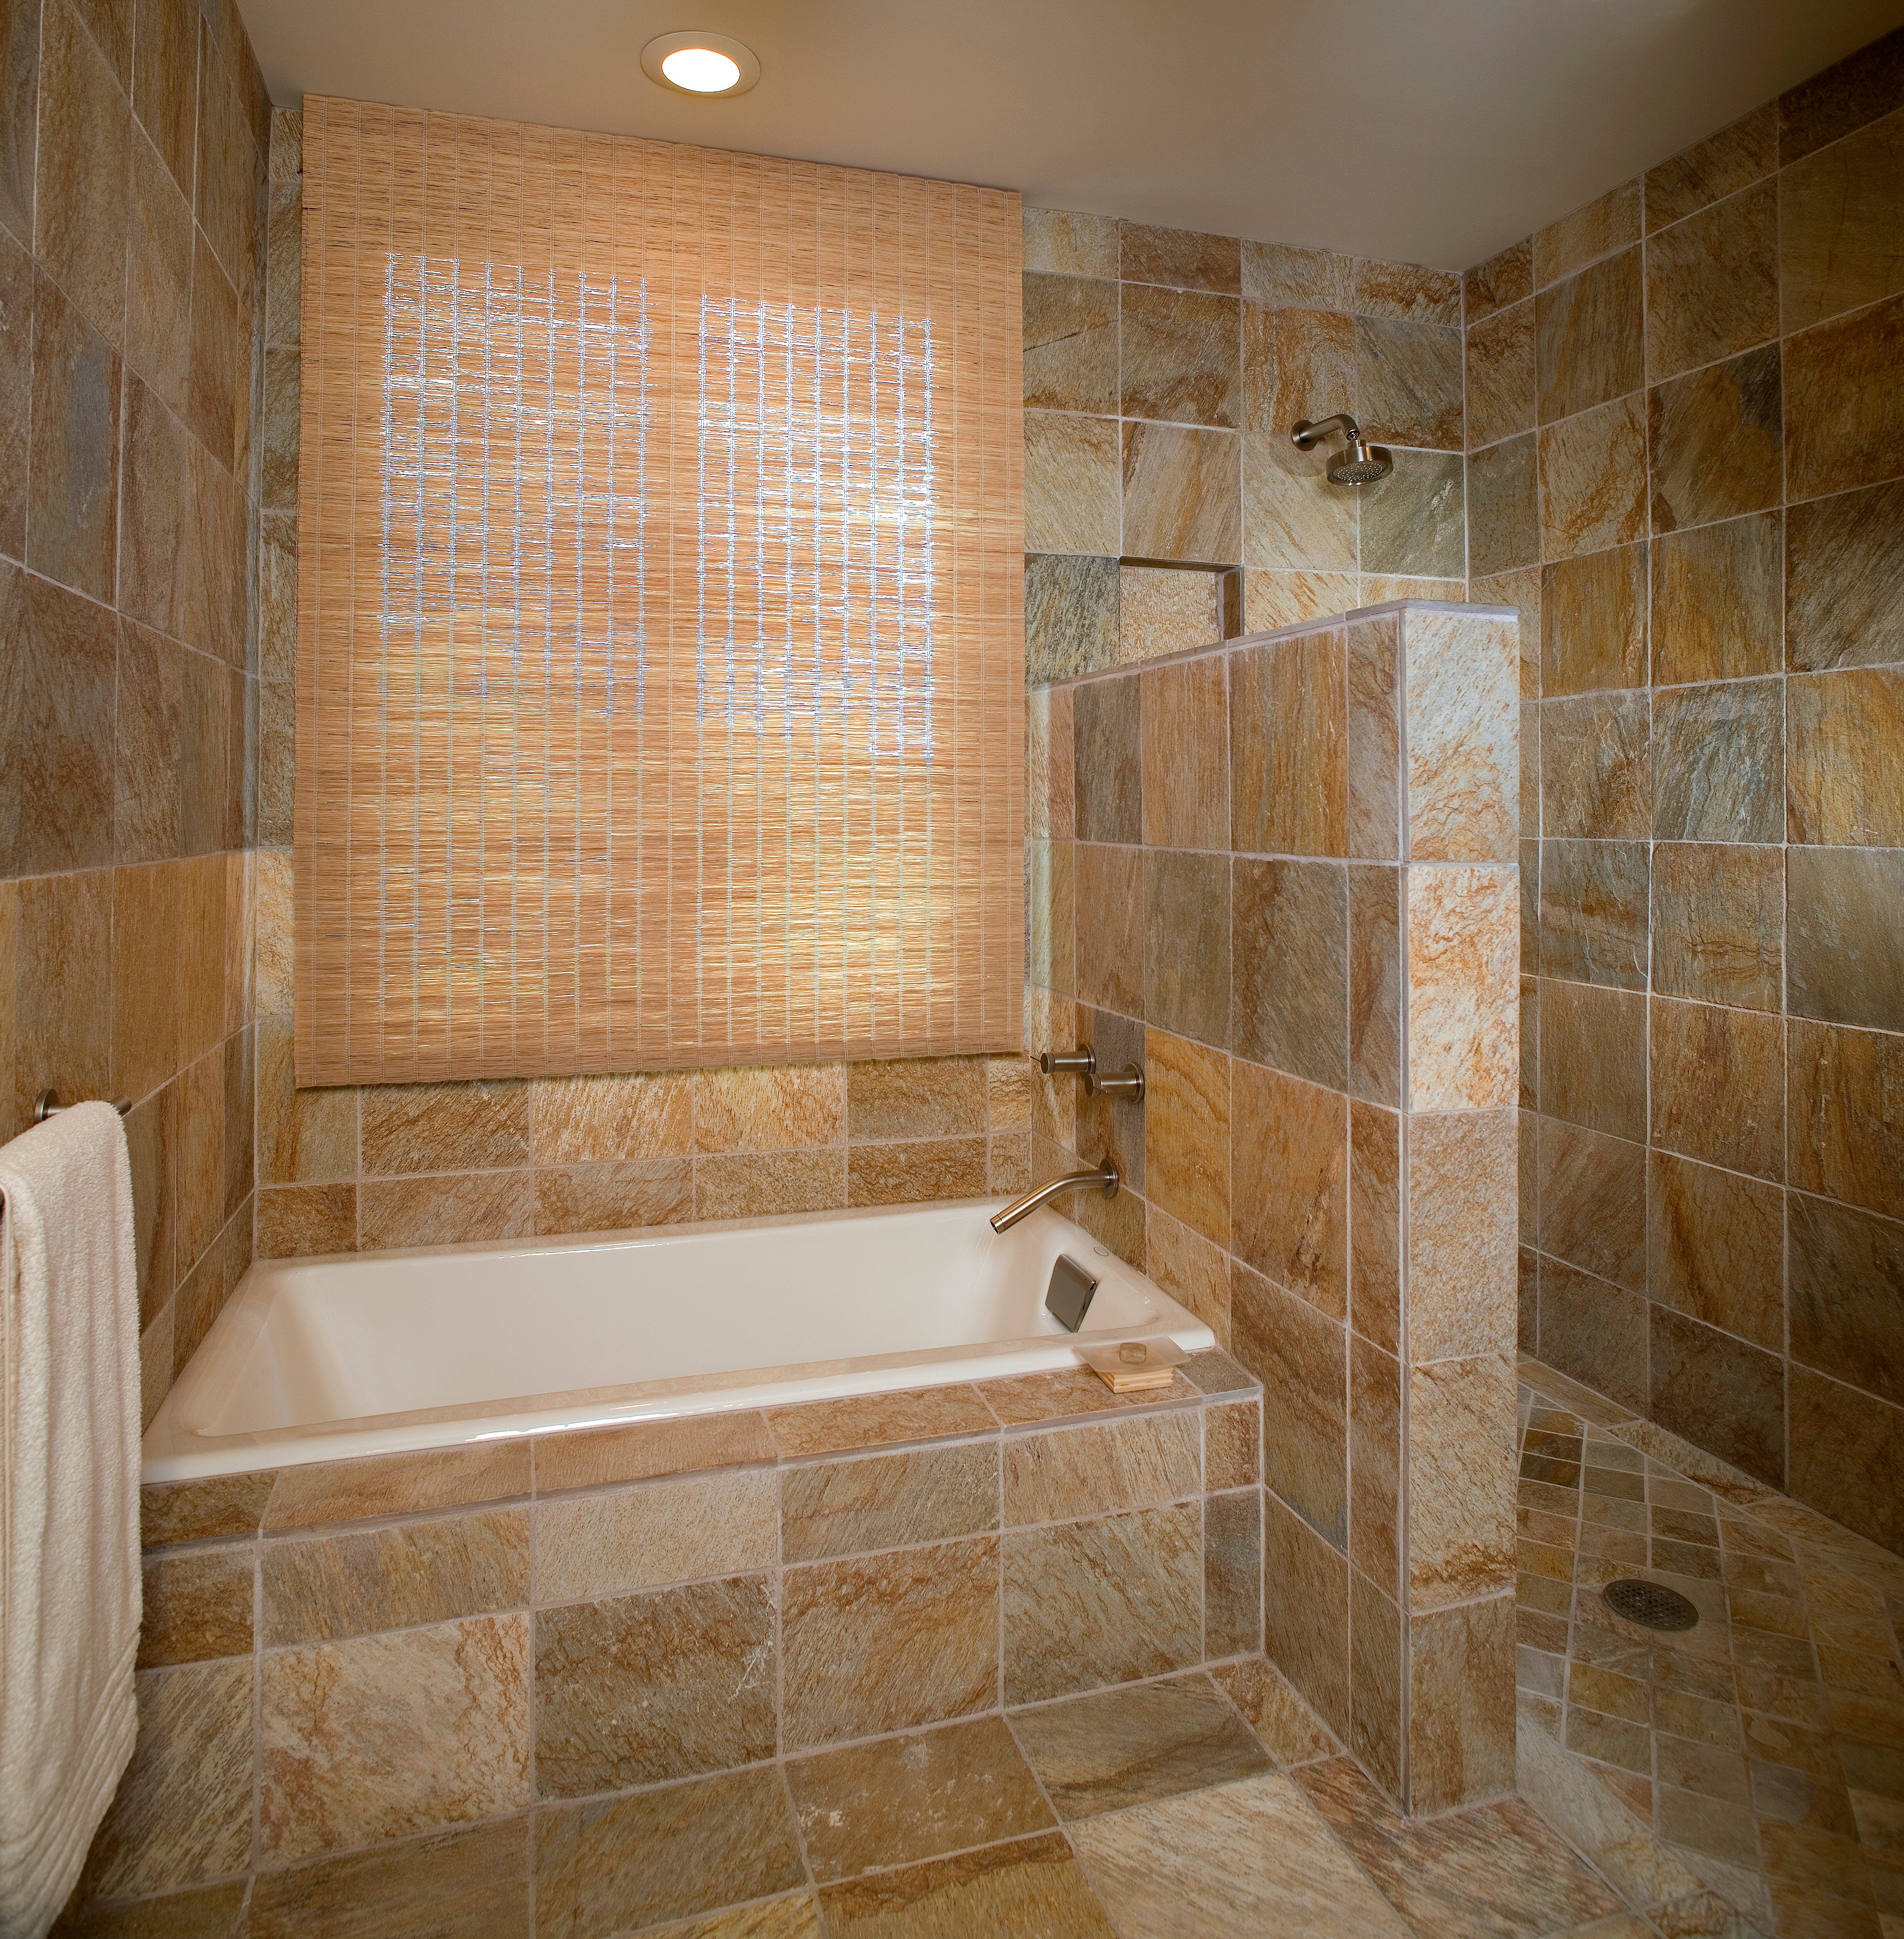 Cost of new bathroom installation - Where Money Is Spend On Bathroom Remodels